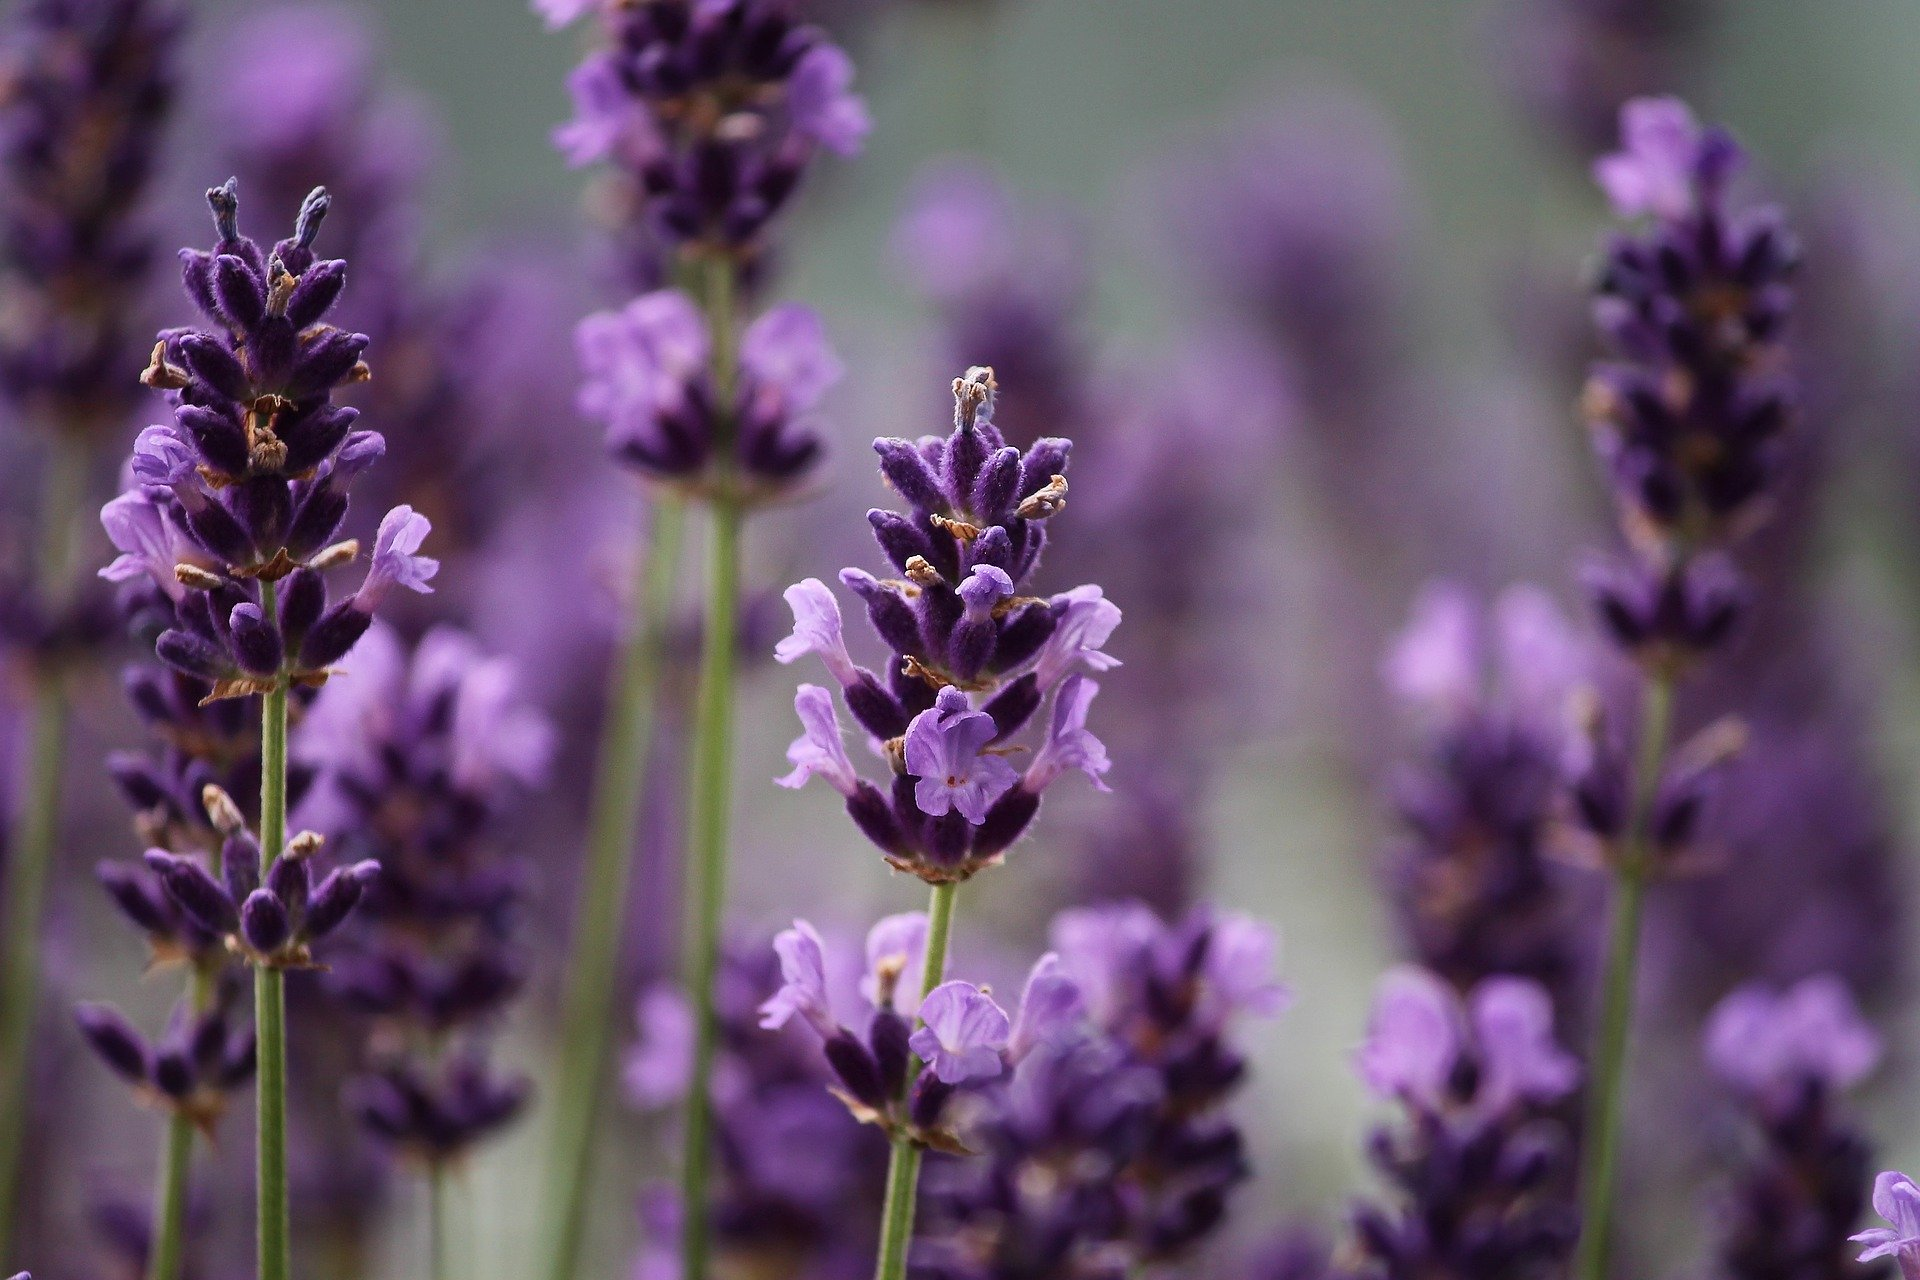 Etheric Lavender Essence Empowerment